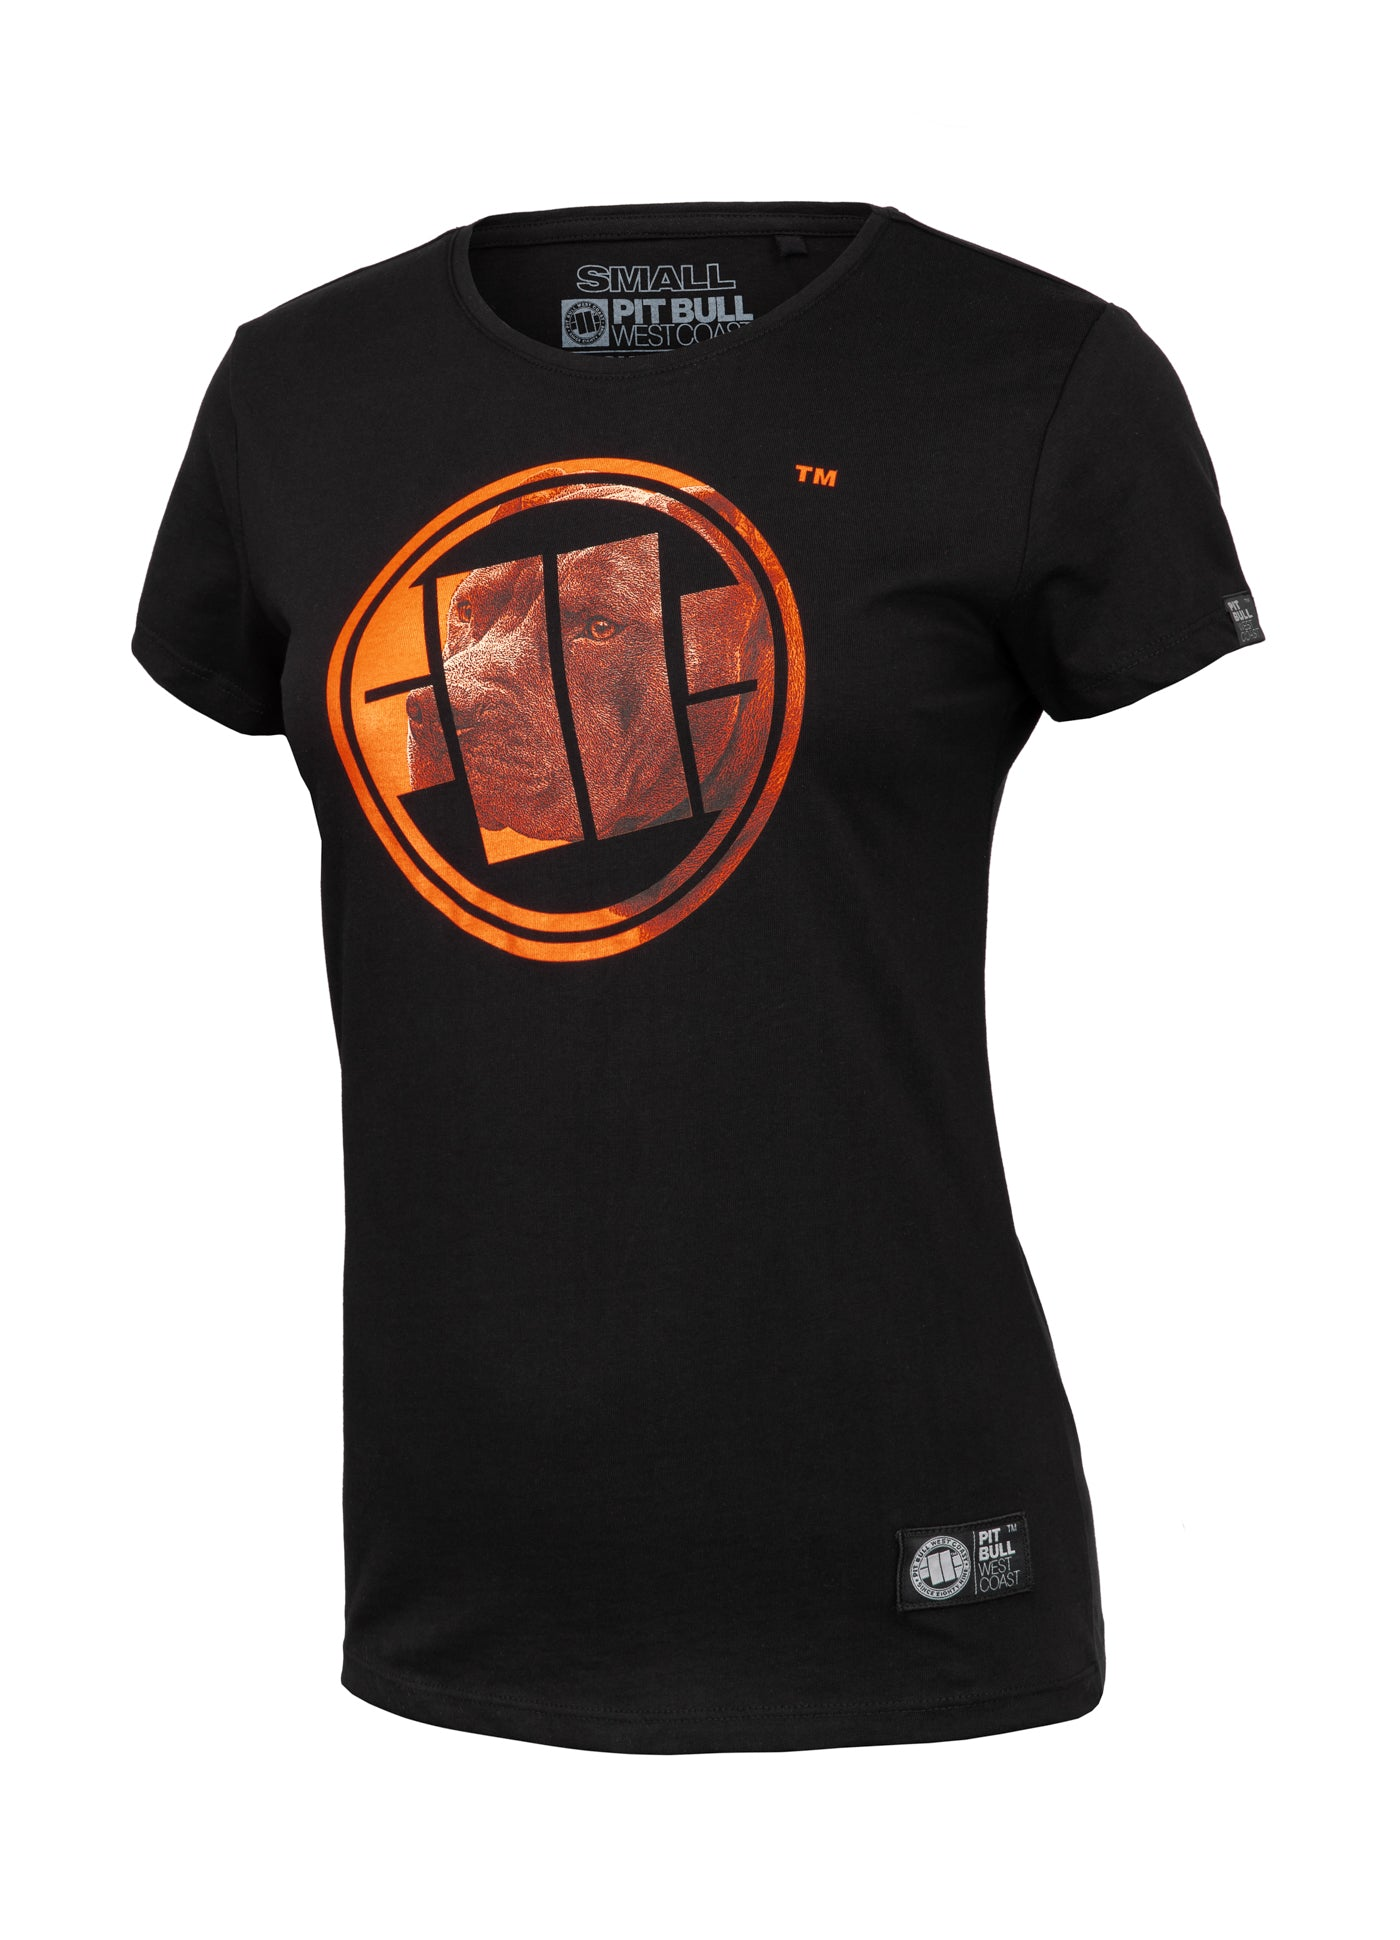 Women's T-shirt ORANGE DOG Black - pitbullwestcoast